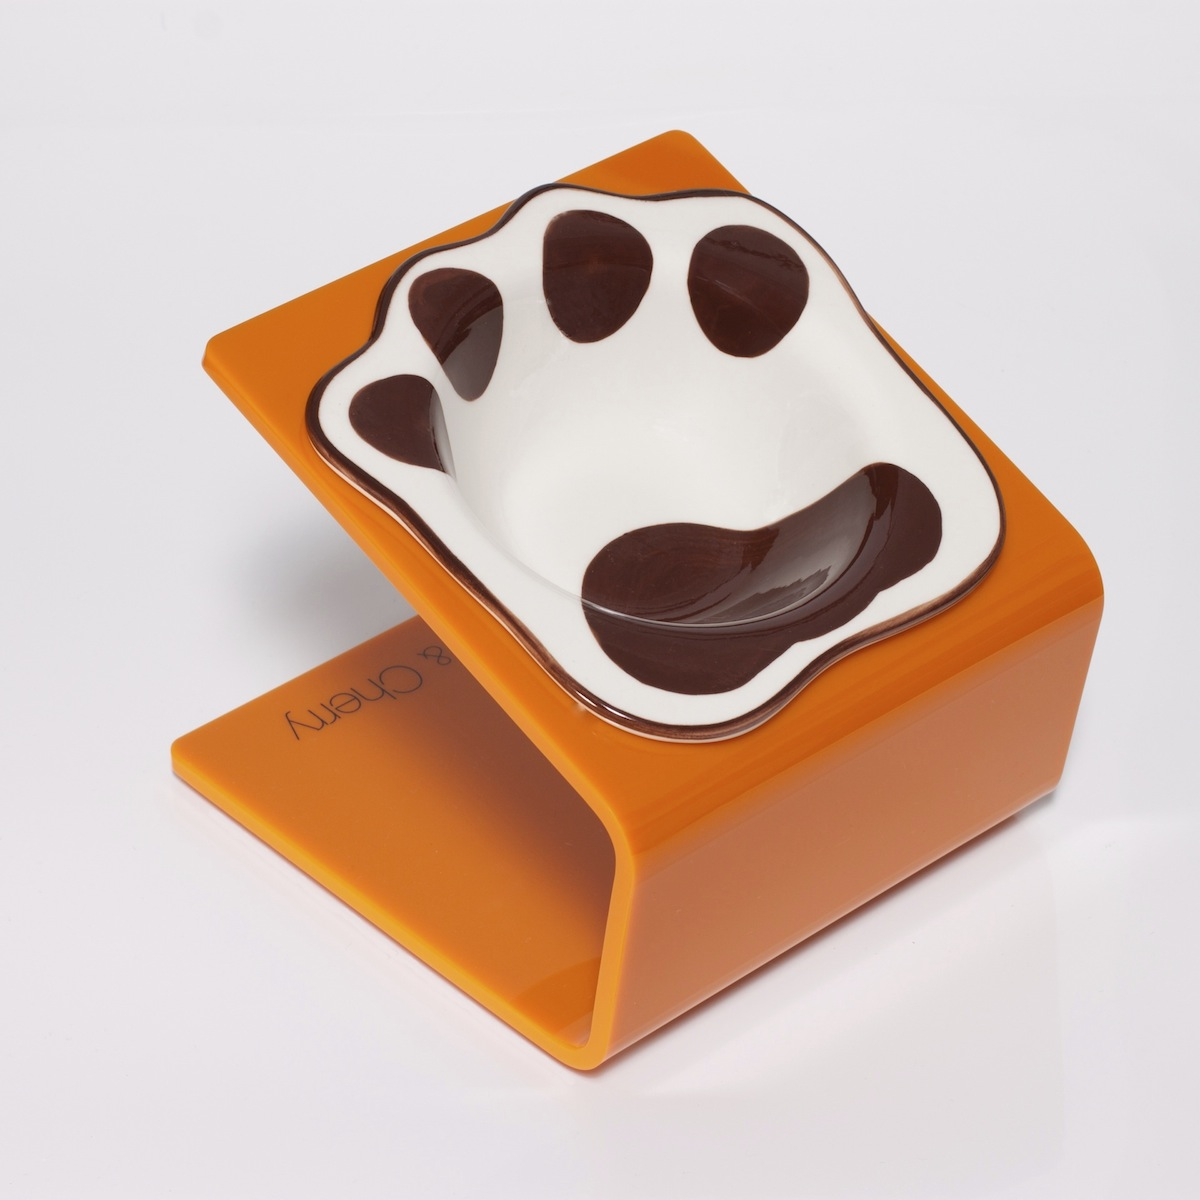 Ceramic Raised Dog Bowls | Outdoor Automatic Dog Feeder | Elevated Dog Bowls